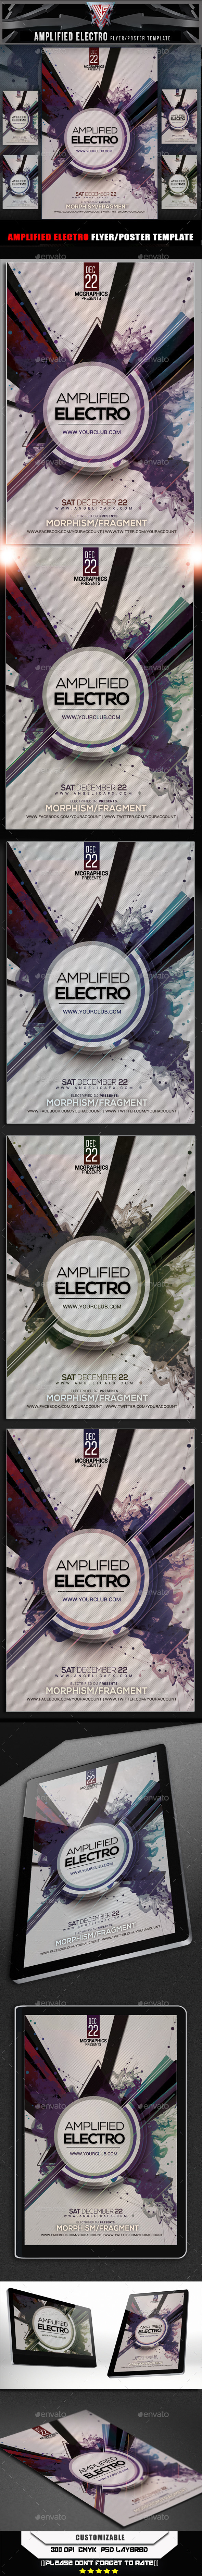 Amplified Electro Flyer Template - Clubs & Parties Events